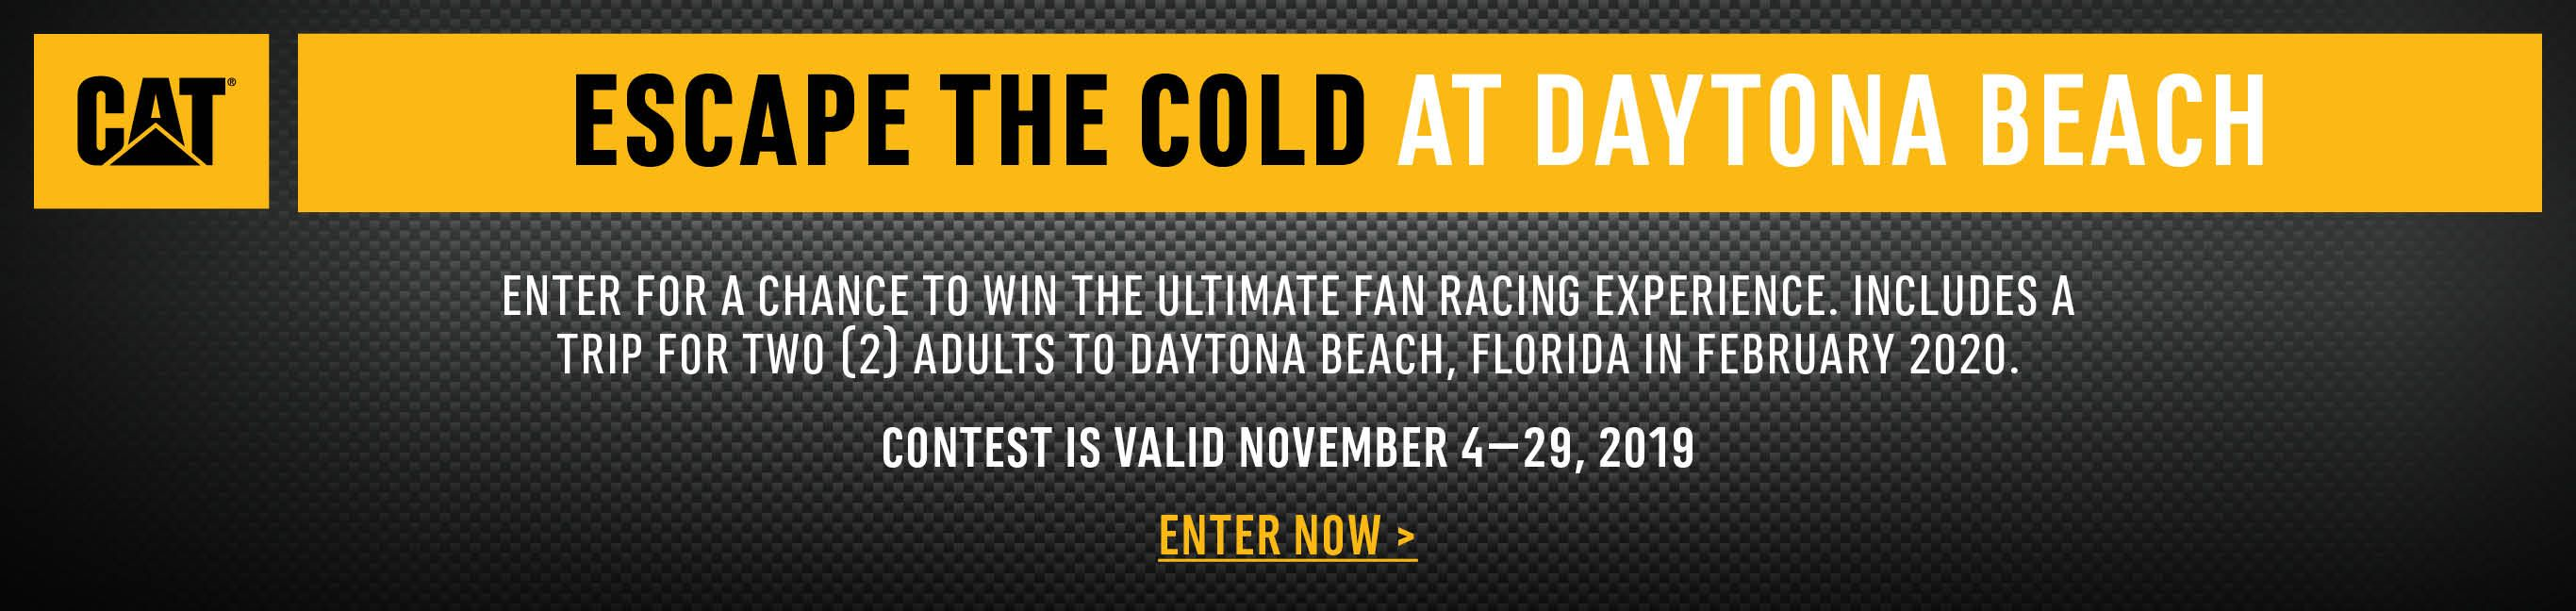 CAT Contest. Escape the Cold at Daytona Beach. Enter for a chance to win the ultimate fan racing experience. Includes a trip for 2 adults to Daytona Beach, Florida in February 2020. Enter Now.